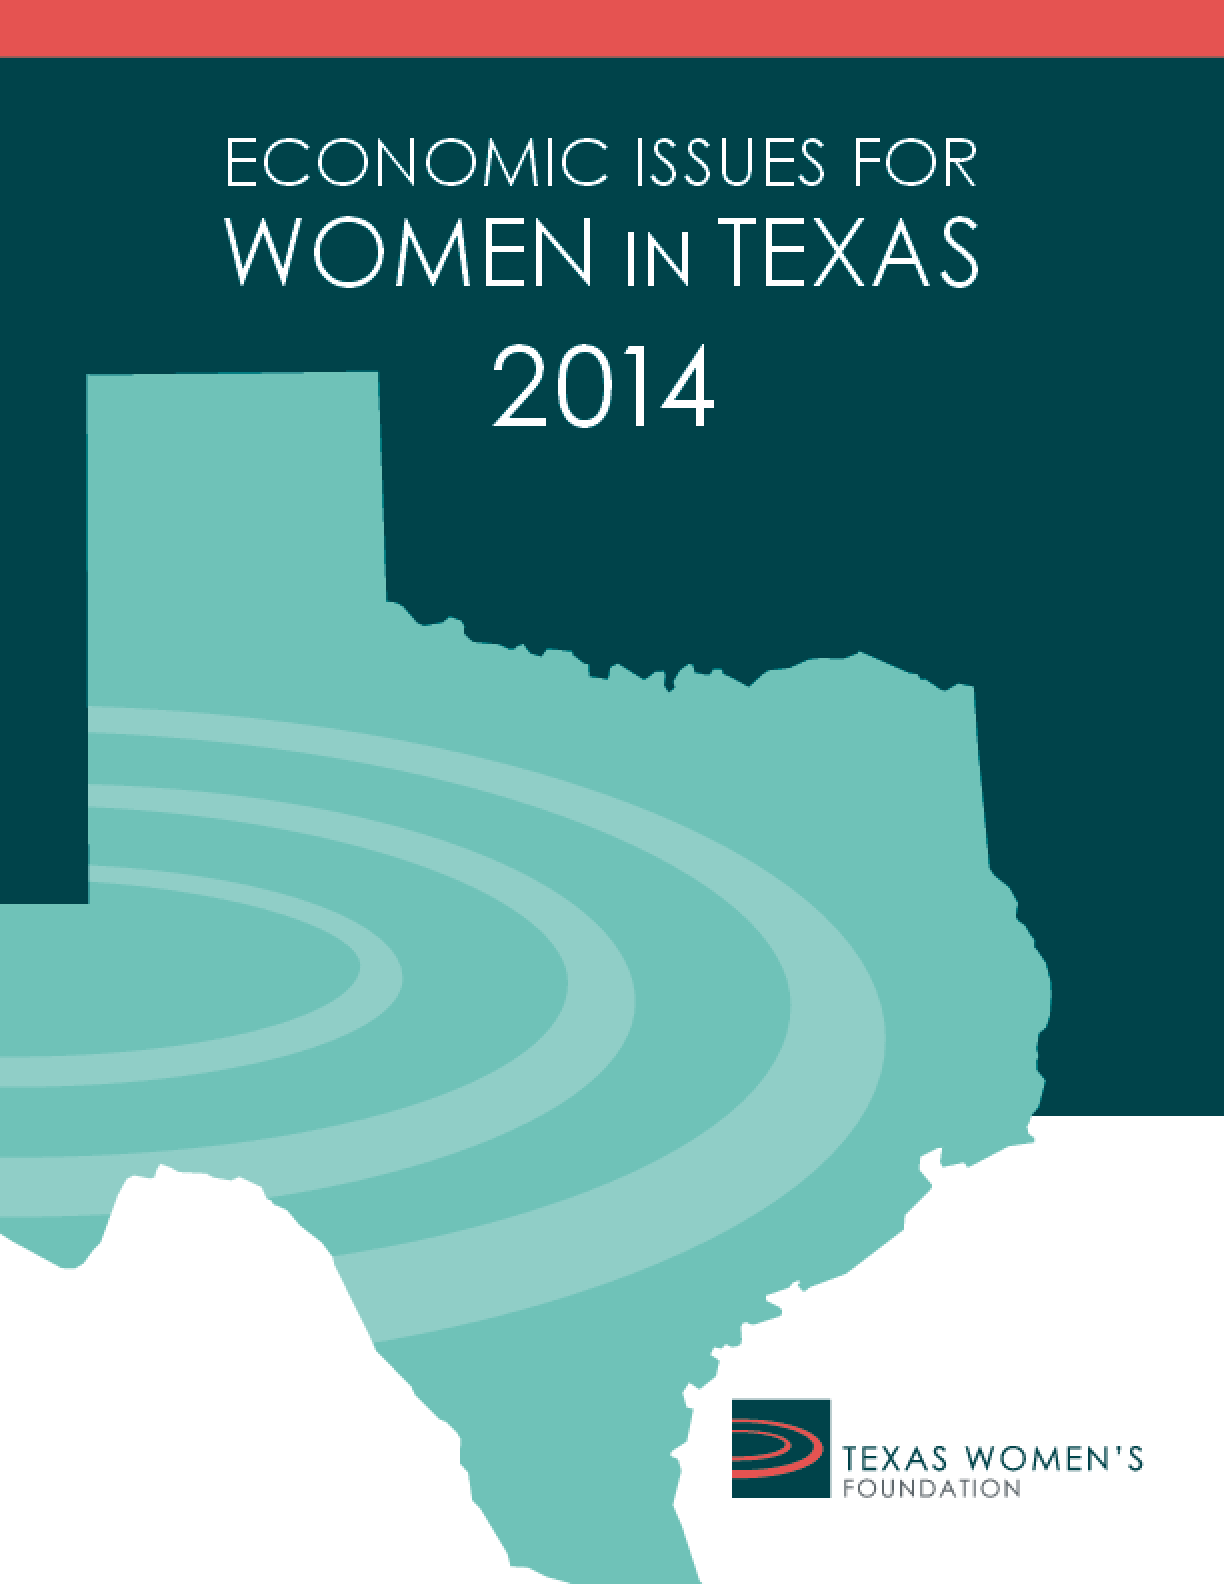 Economic Issues for Women in Texas 2014